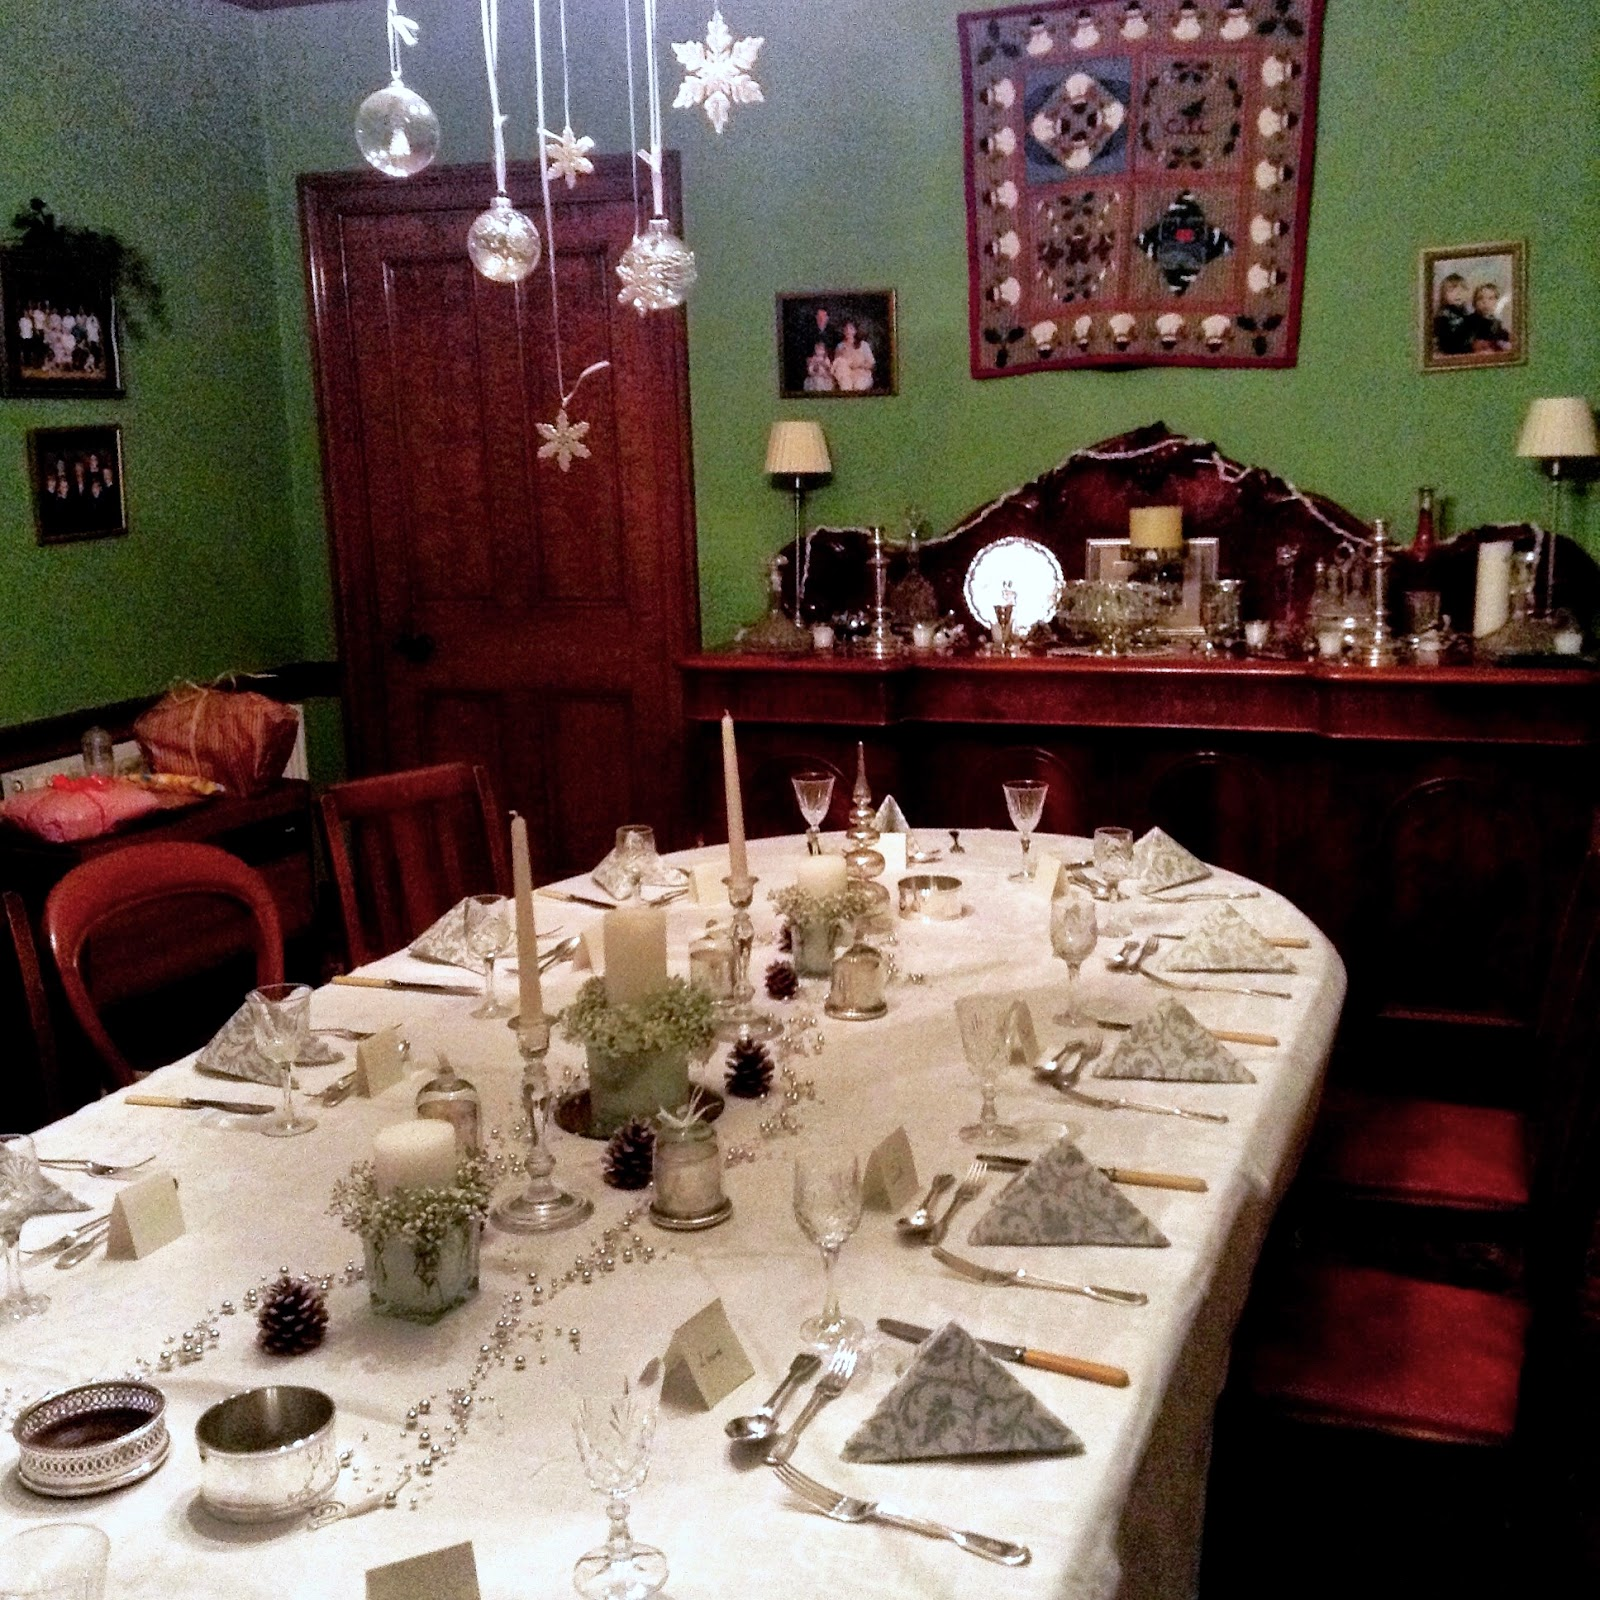 Christmas dinner table with white & silver napkins, candles, pine cones & dangling ornaments on light fixture